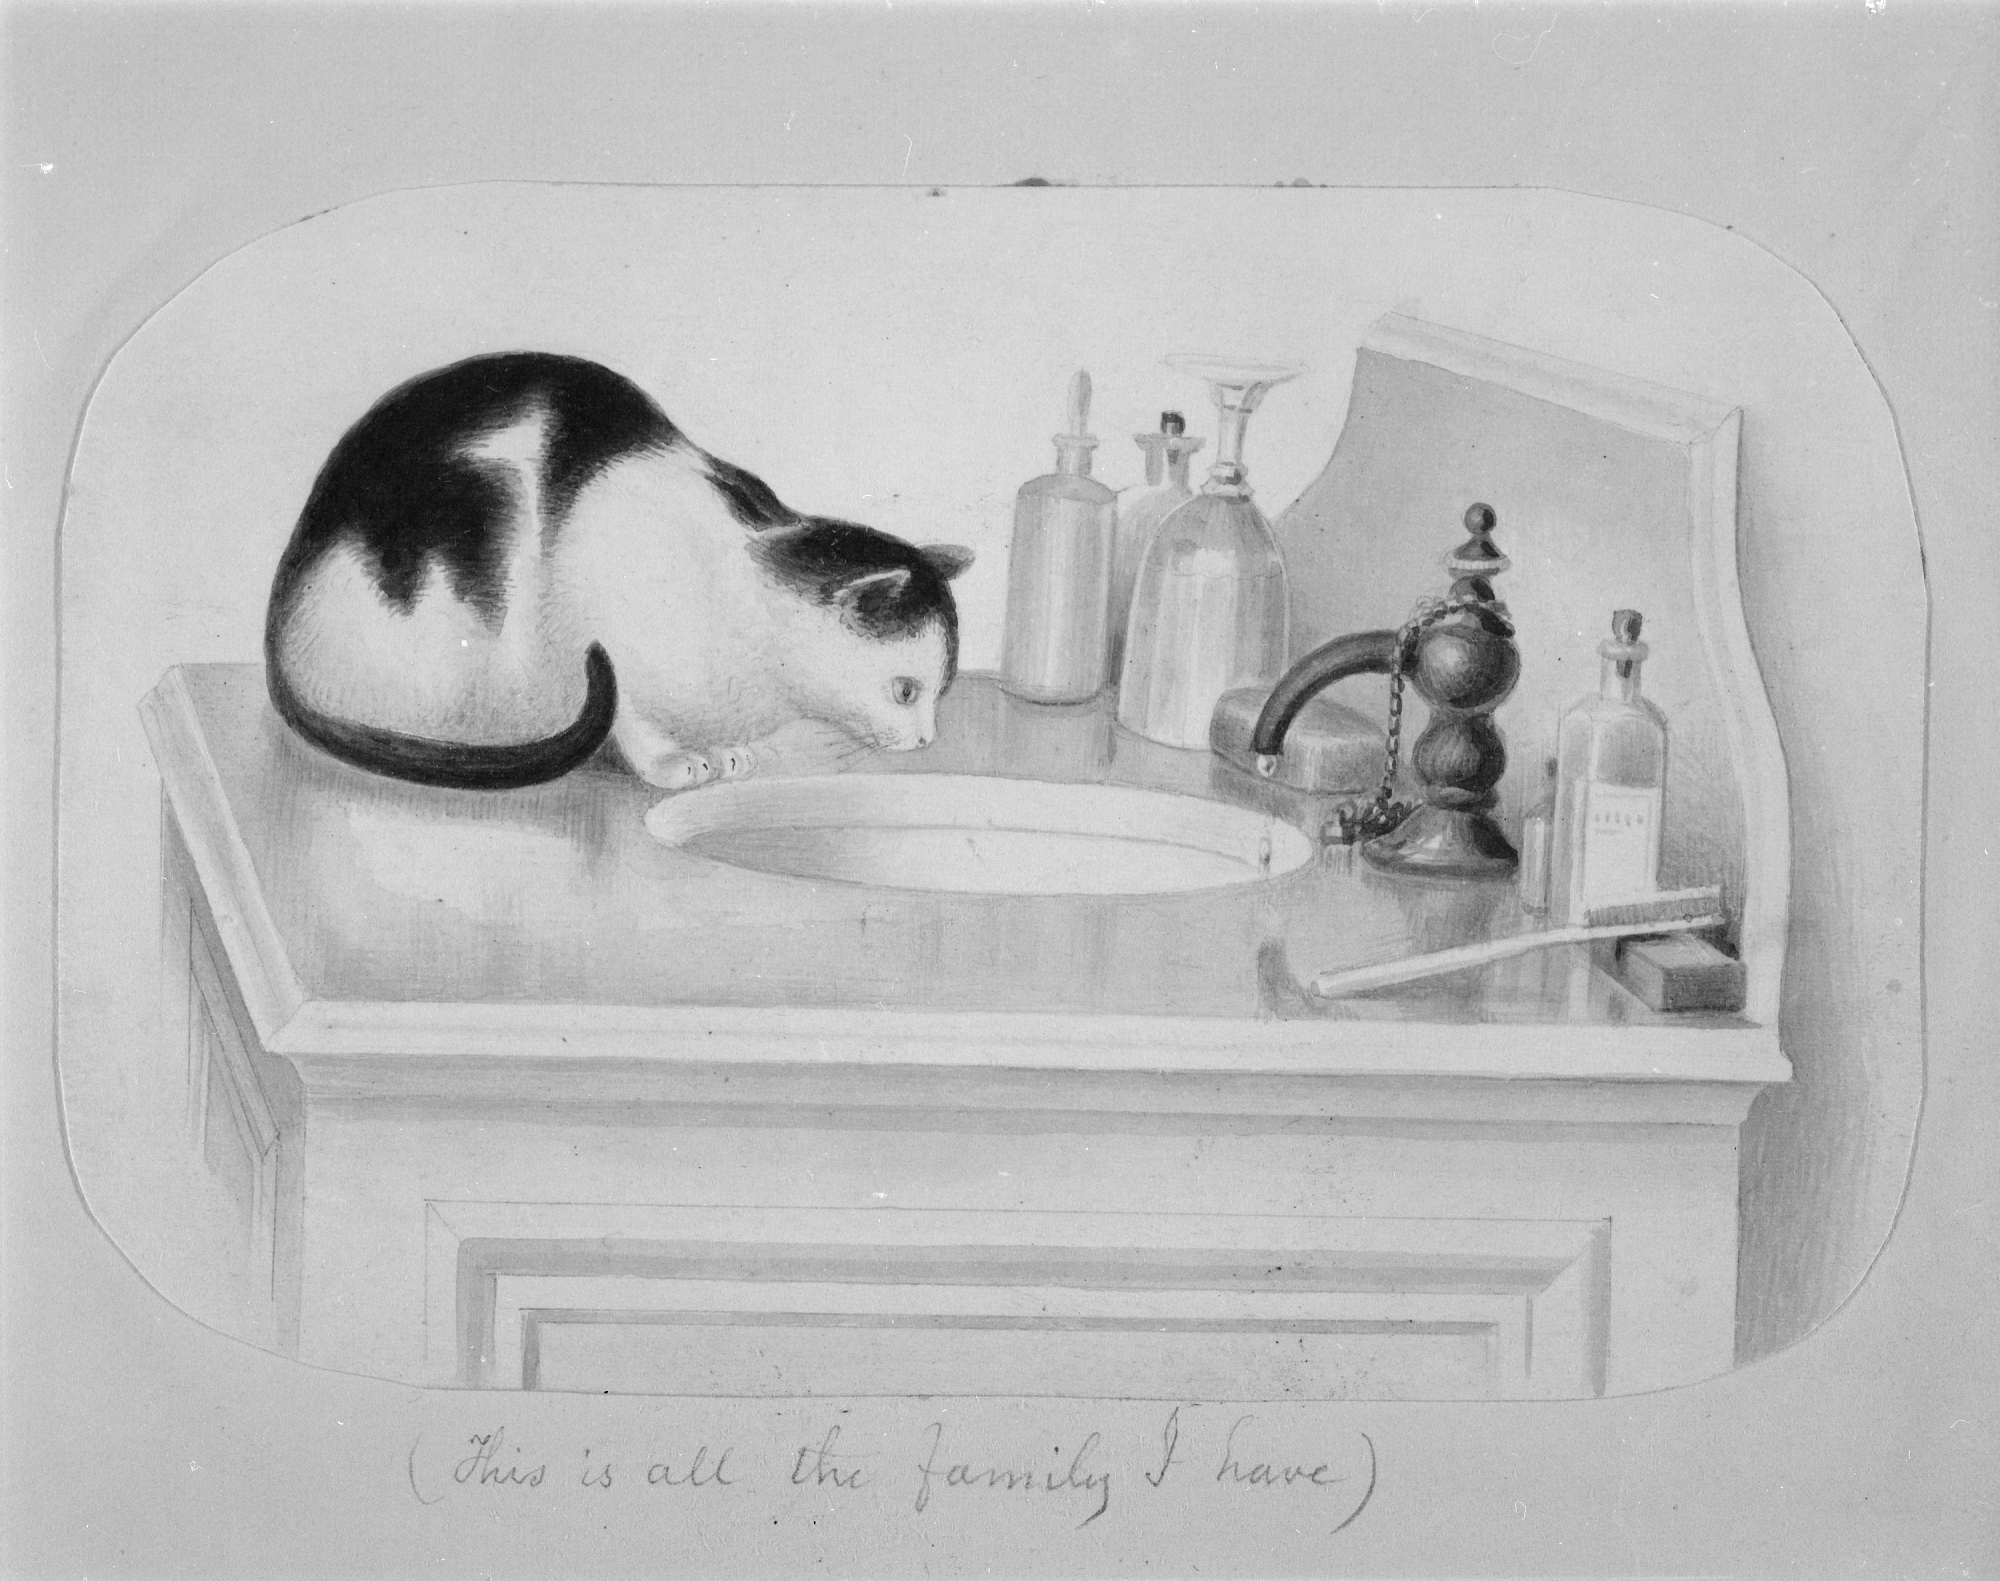 B&W image of a sketch of a white cat with black spots sitting on sink counter looking into a sin